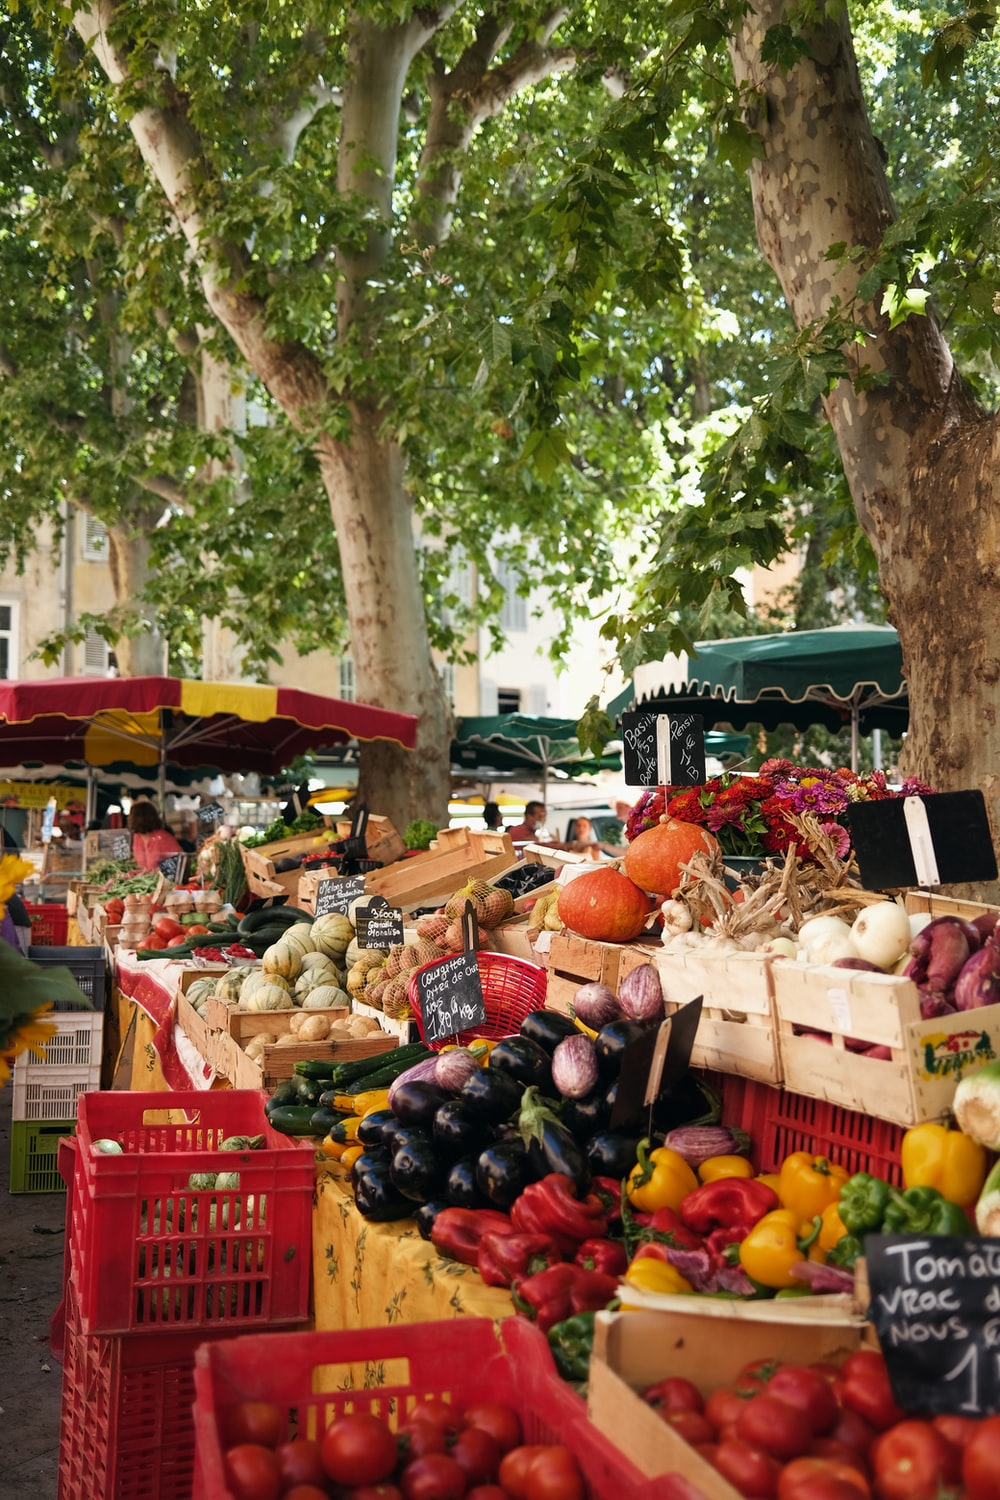 fruit stand on the street during daytime